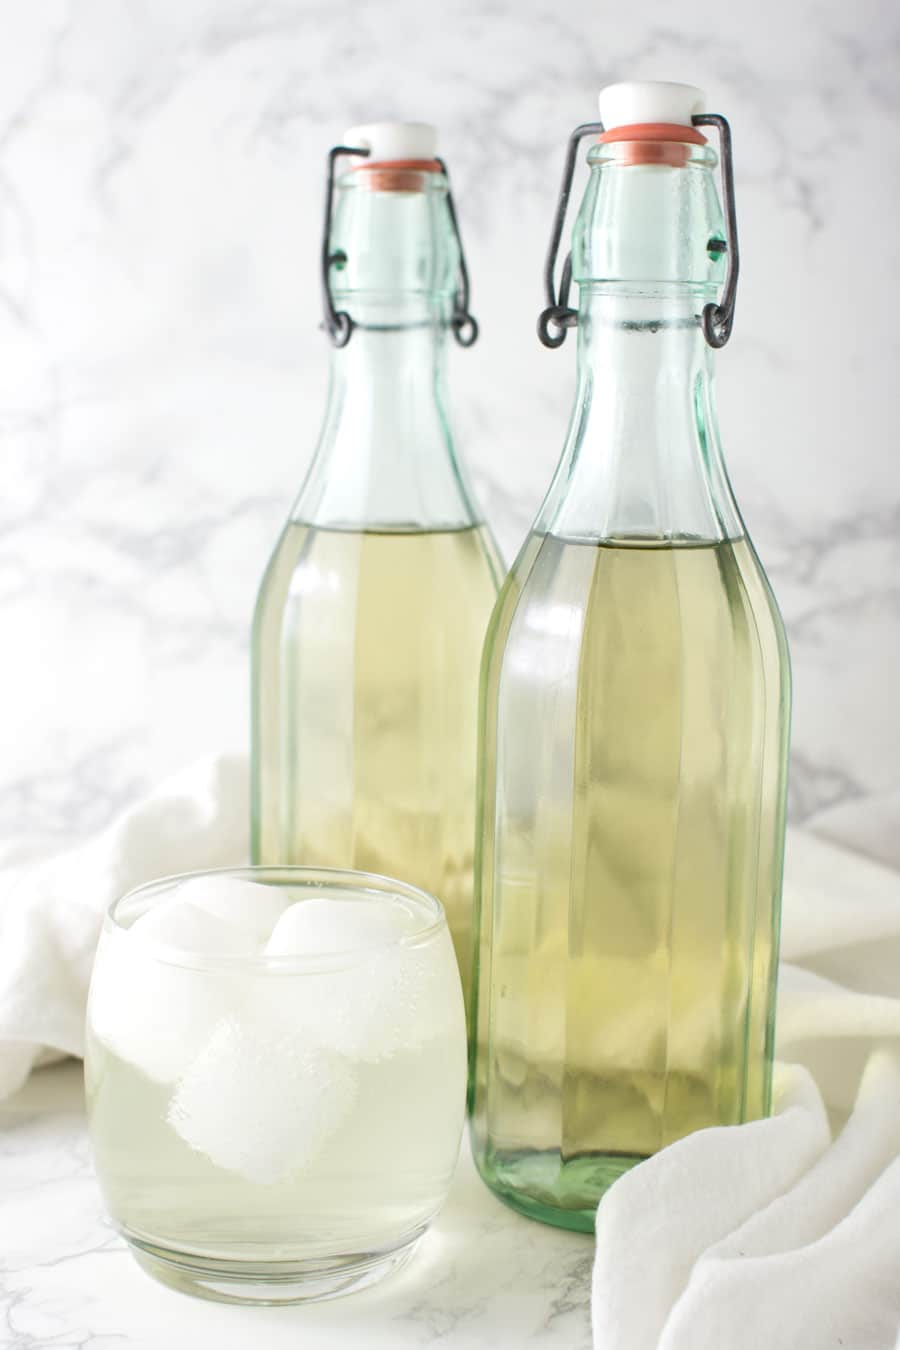 Ginger Beer recipe from acleanplate.com #aip #paleo #